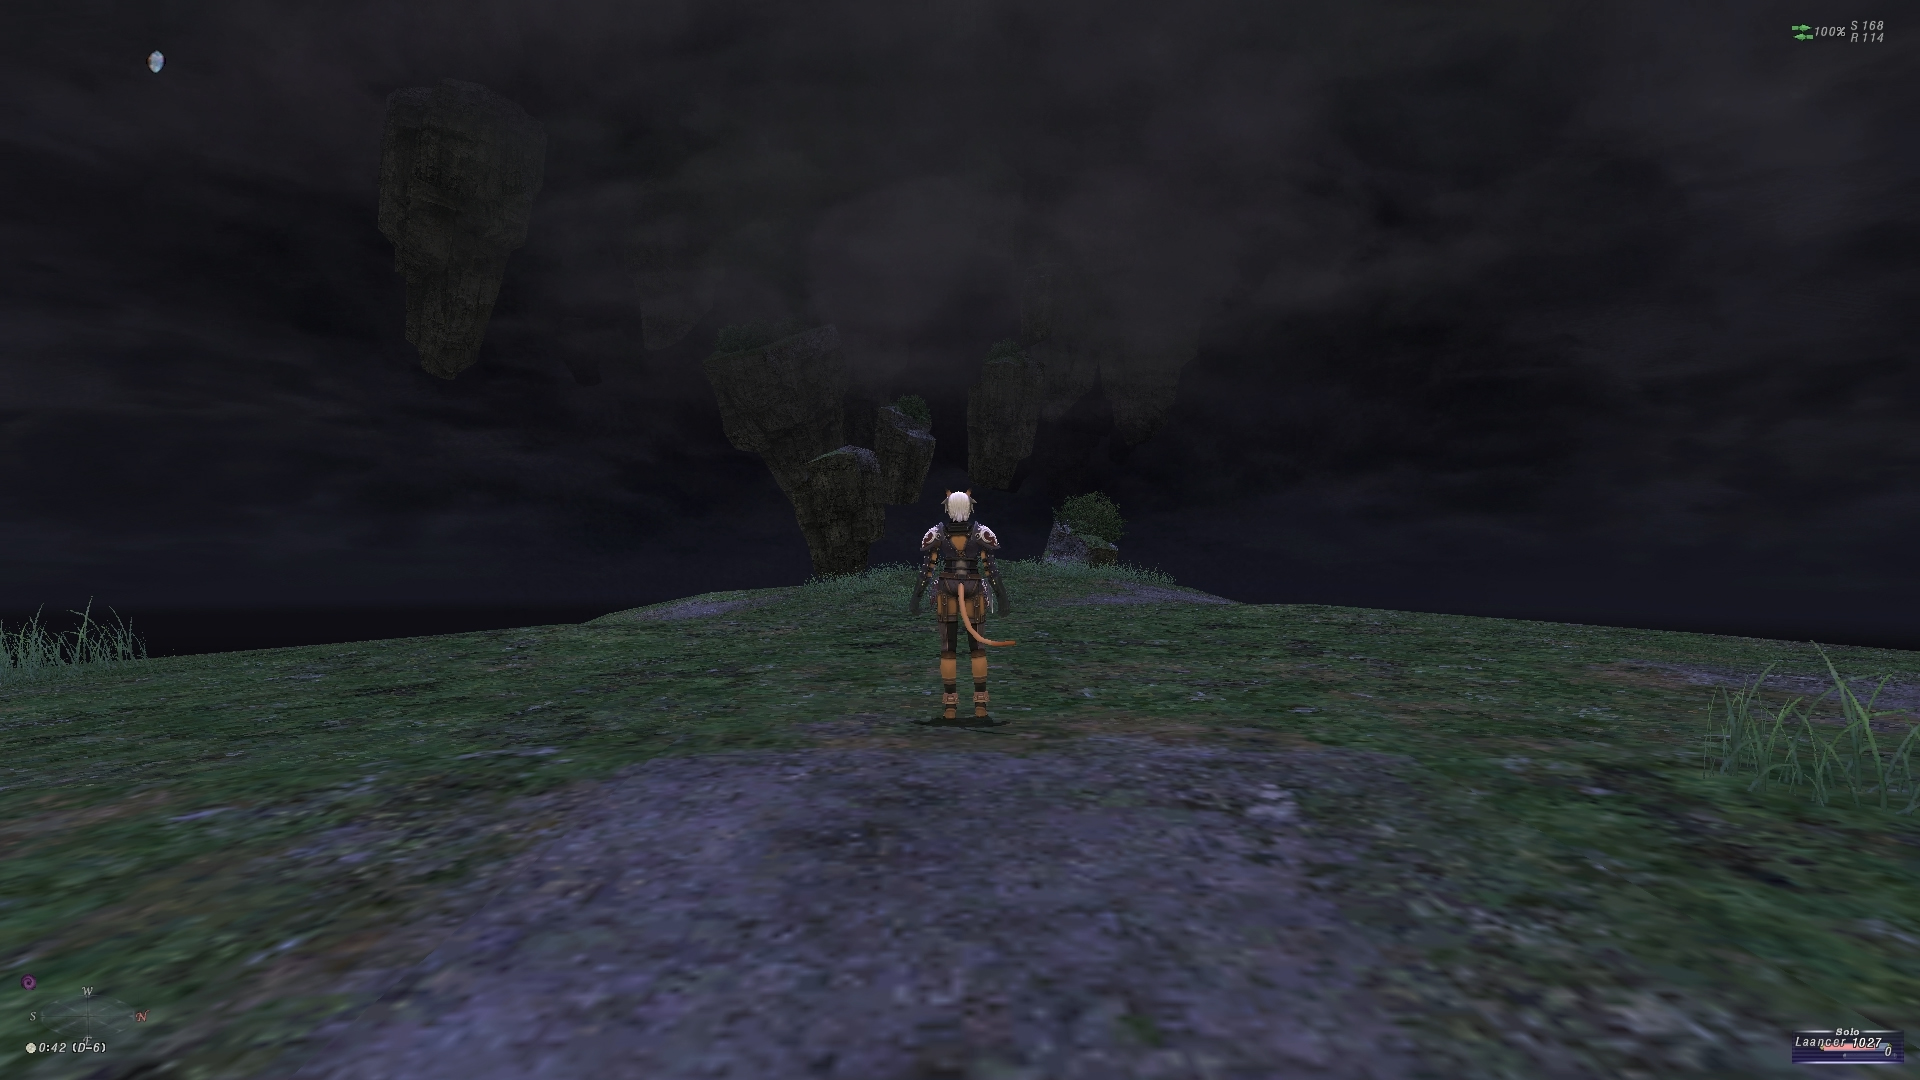 videogame avatar stands with back to camera. Large blocks of earth float above the ground and are obscured by fog.